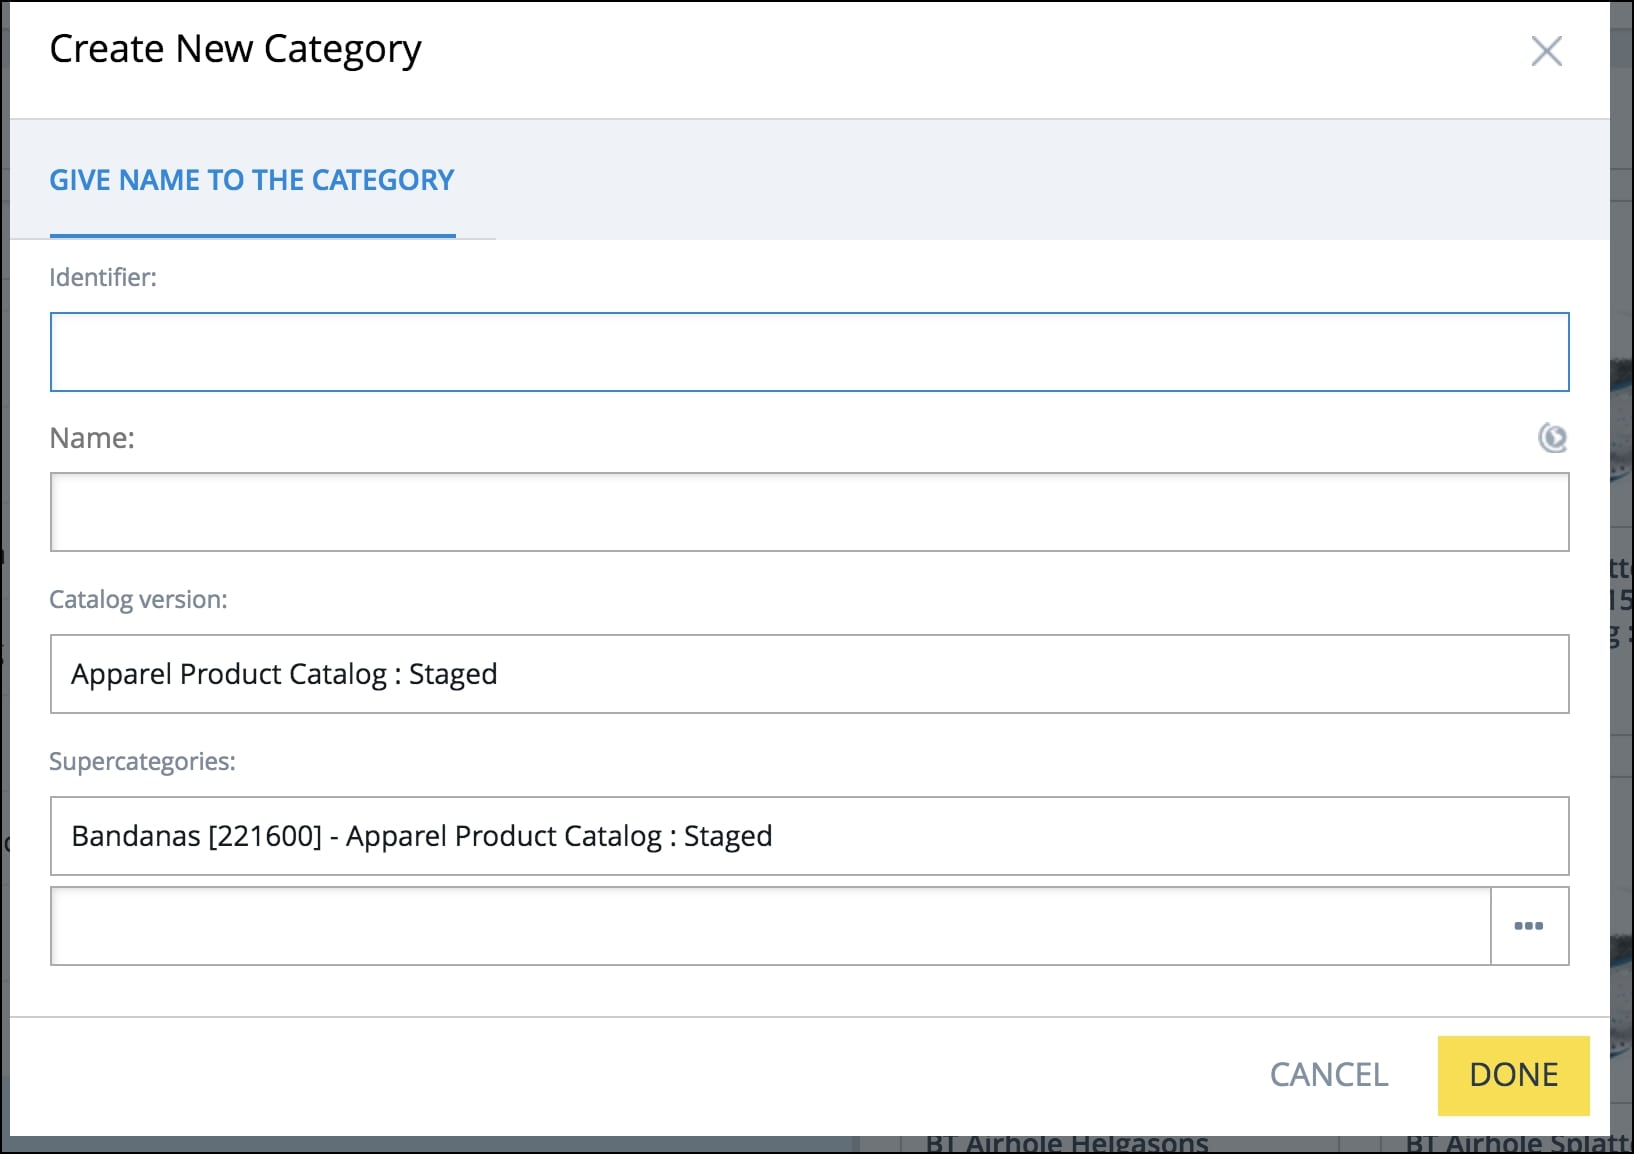 SAP C/4HANA Commerce Cloud Category Creation